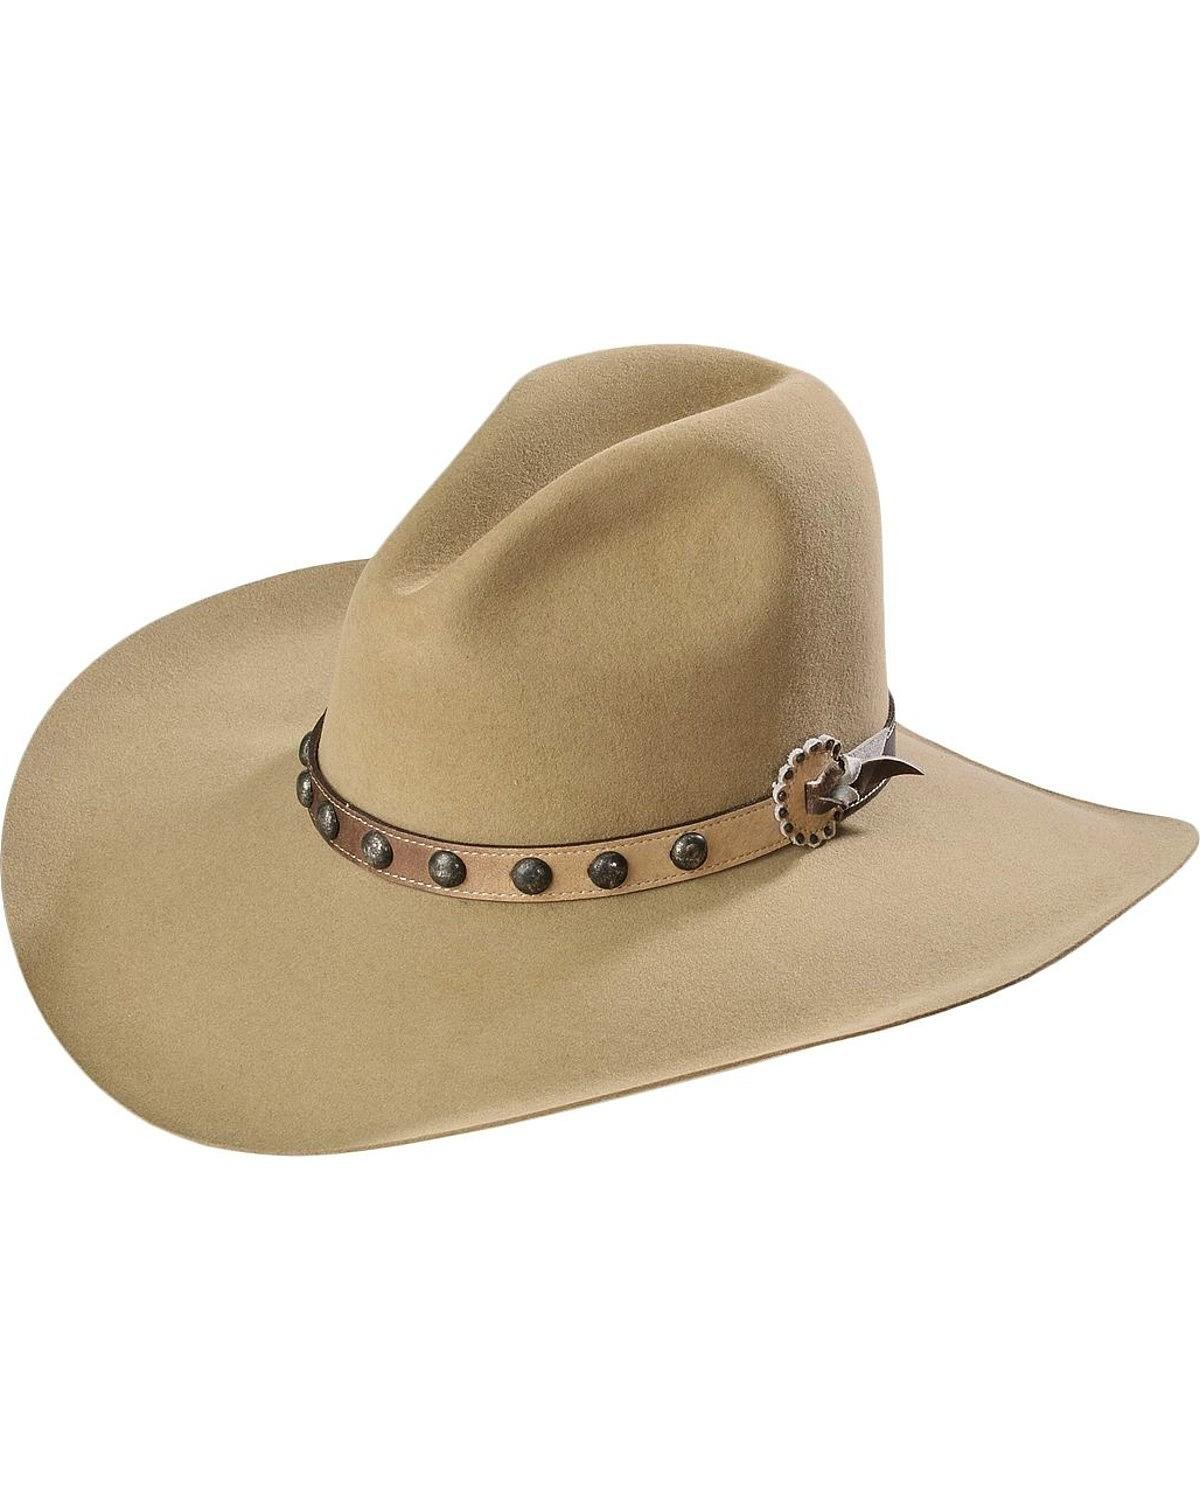 Stetson Men's 3X Broken Bow Buffalo Cowboy Hat Buck Tan 7 1/2